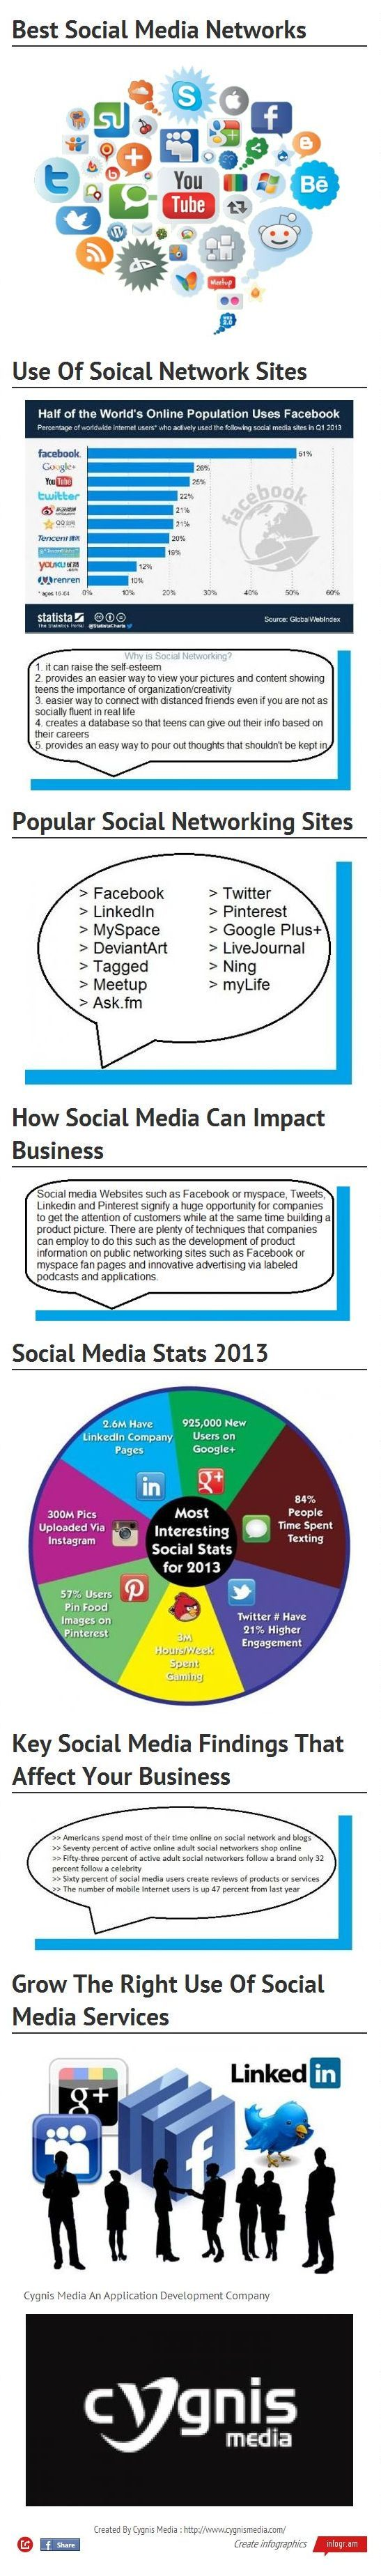 In this infographic just and overview of different social media website like : facebook,twitter and many more related to social media activity...